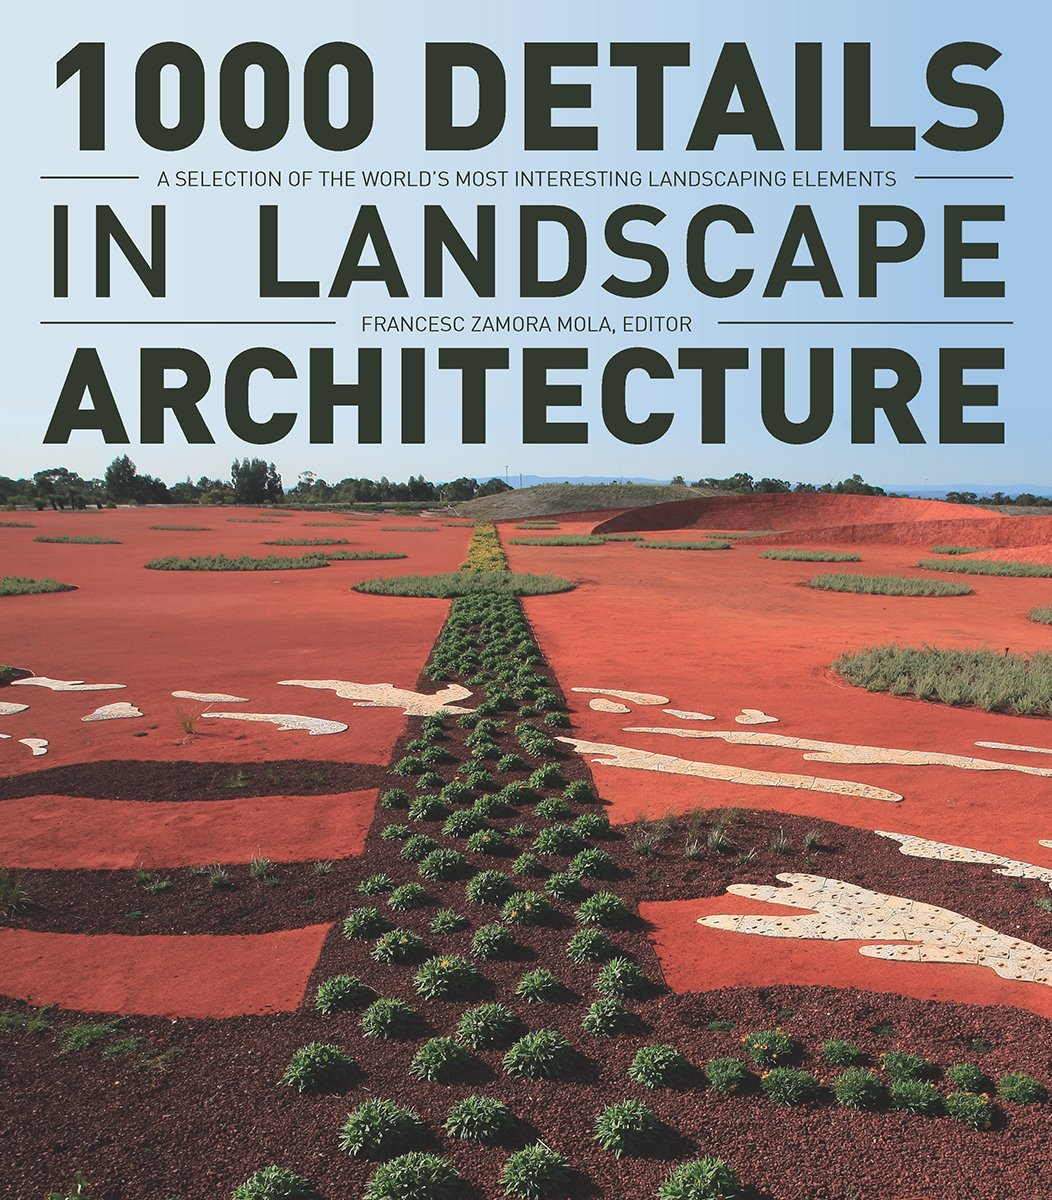 1000 Details In Landscape Architecture A Selection Of The World S Most Interesting Landscaping Elements Mola Francesc 9781770850408 Amazon Com Books